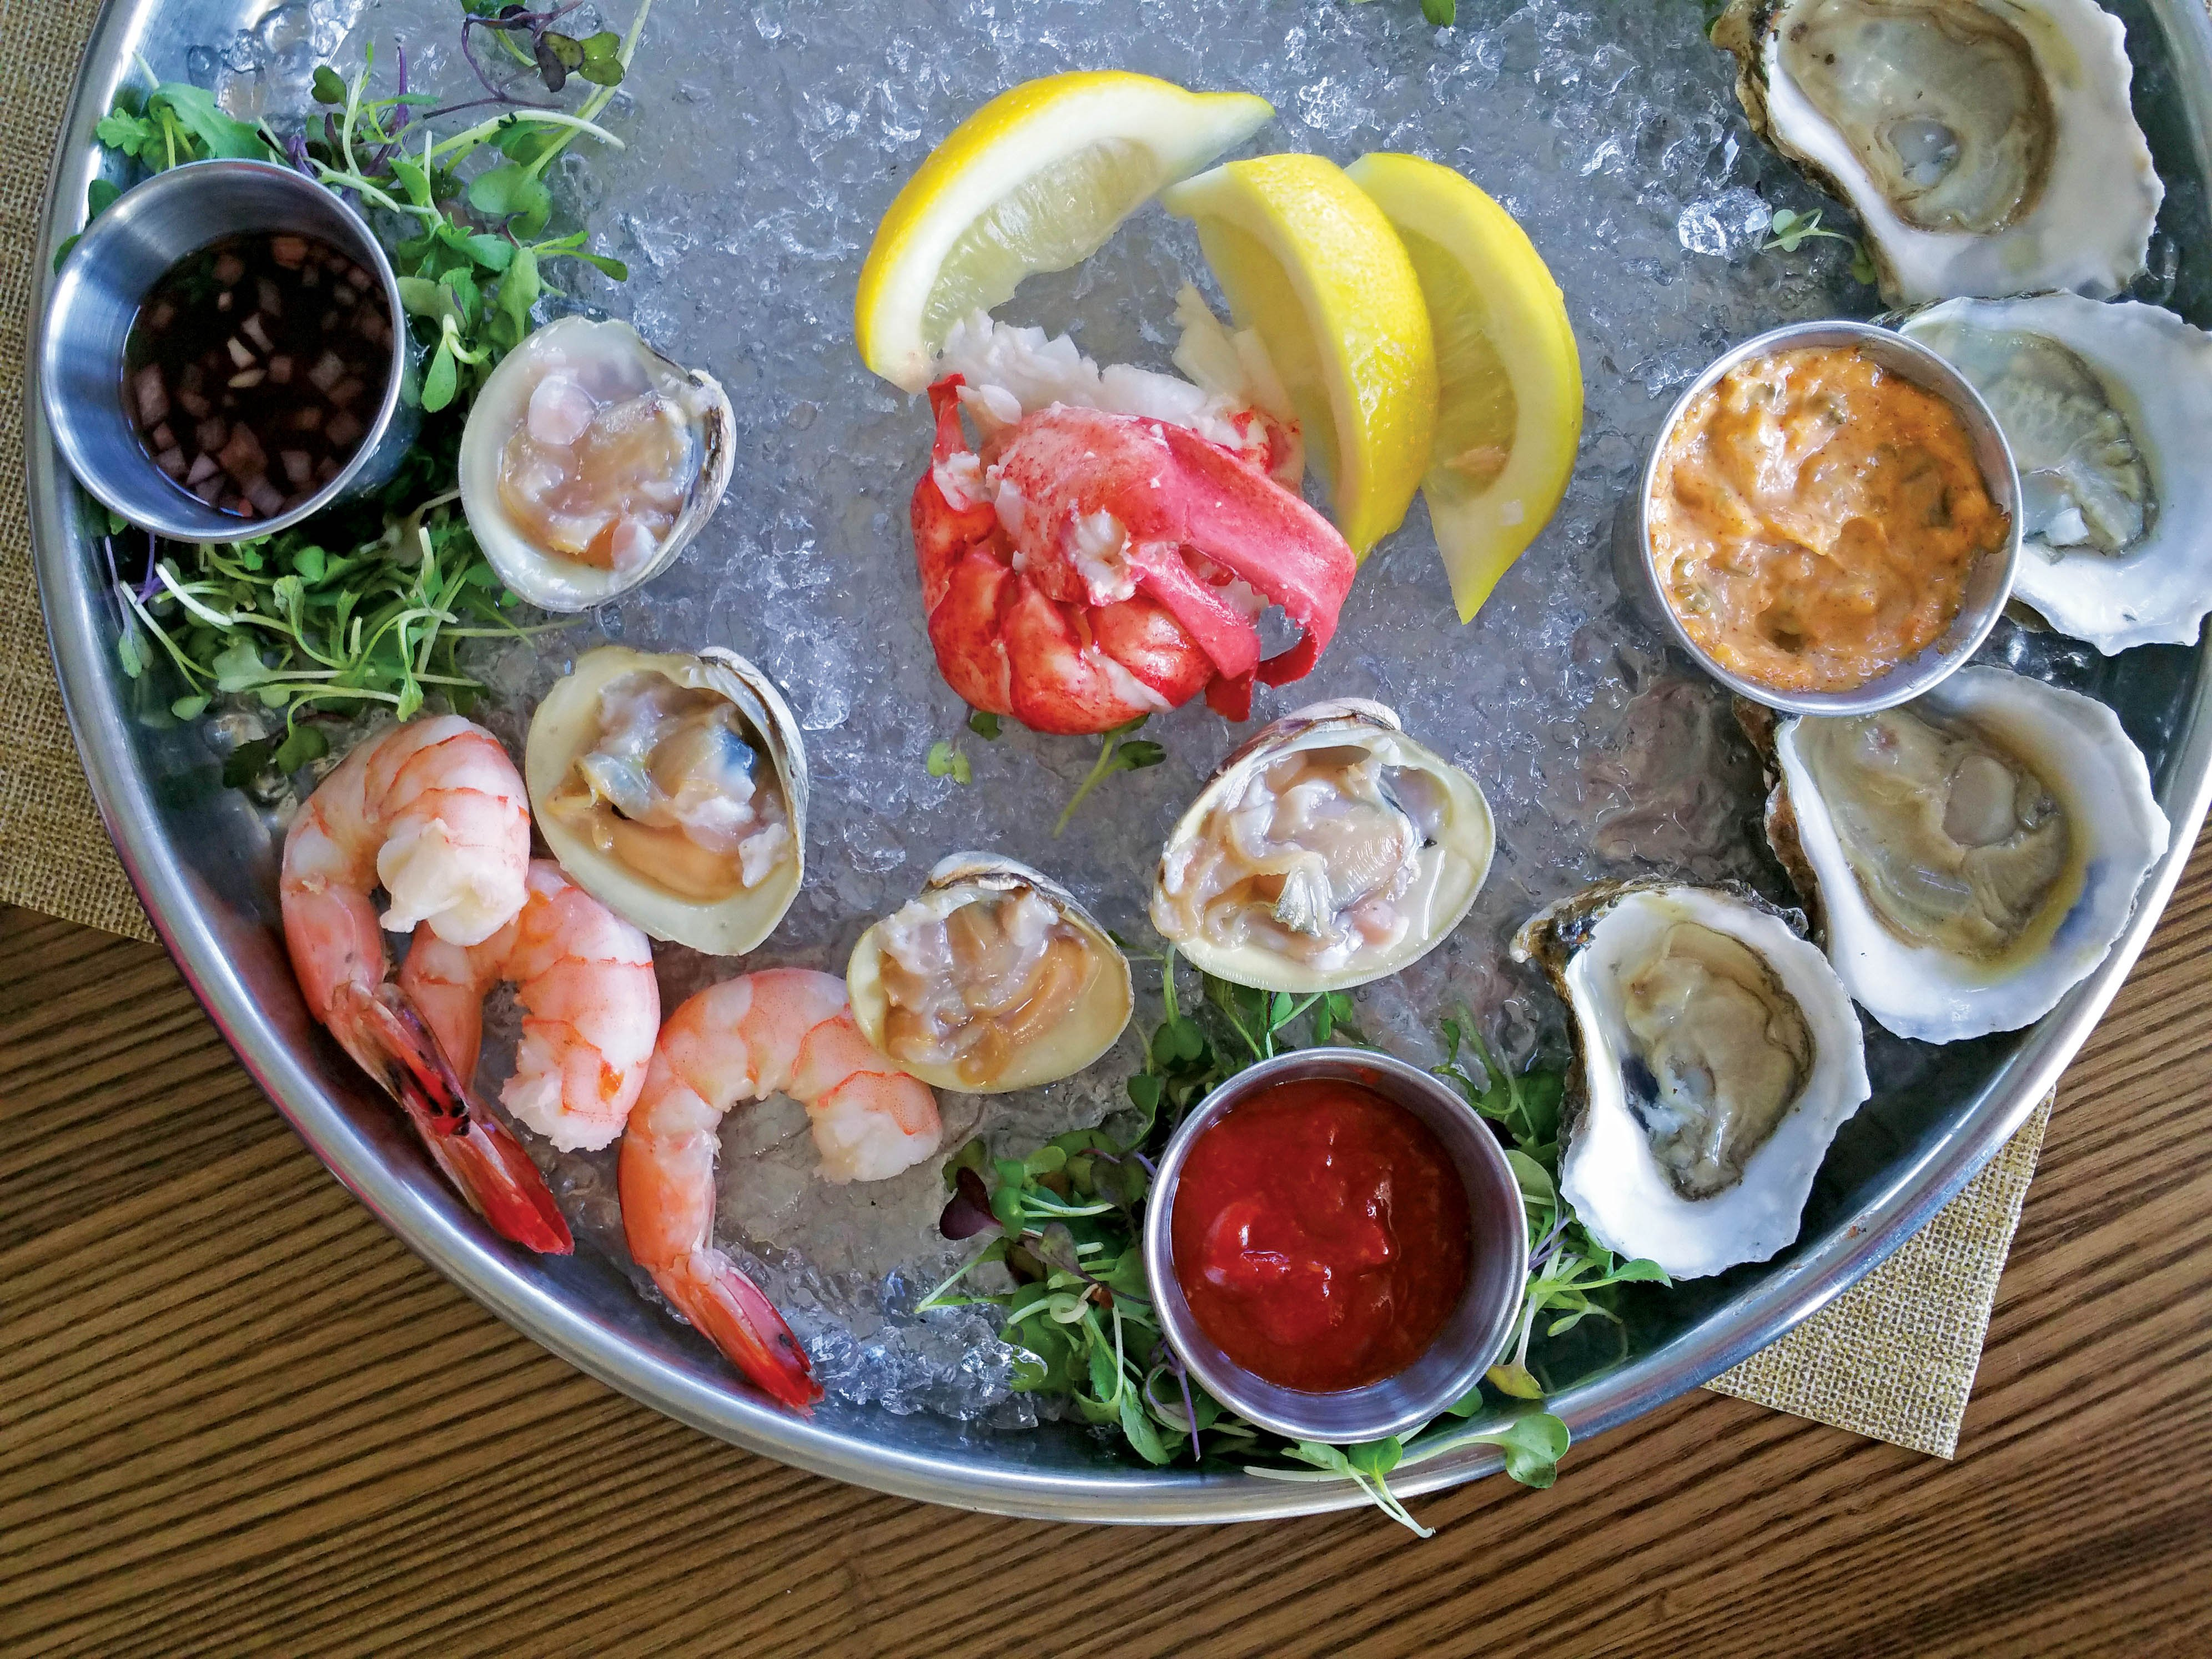 We offer raw bar items which may change seasonally.